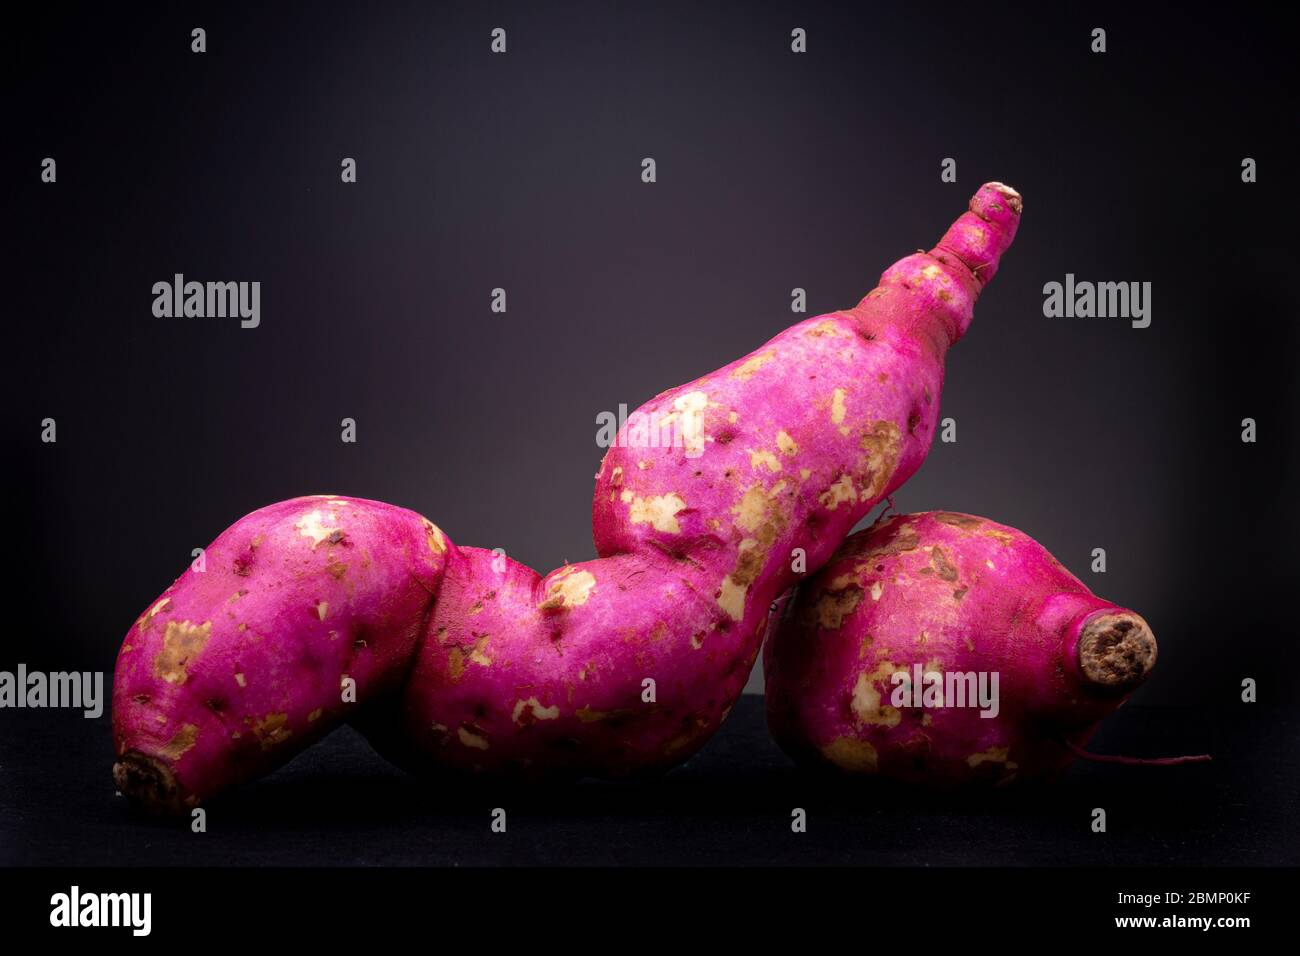 Couple of shiny magenta fresh vibrant colourful organic raw sweet potato or yam in studio lighting contrasted against a dark grey background Stock Photo